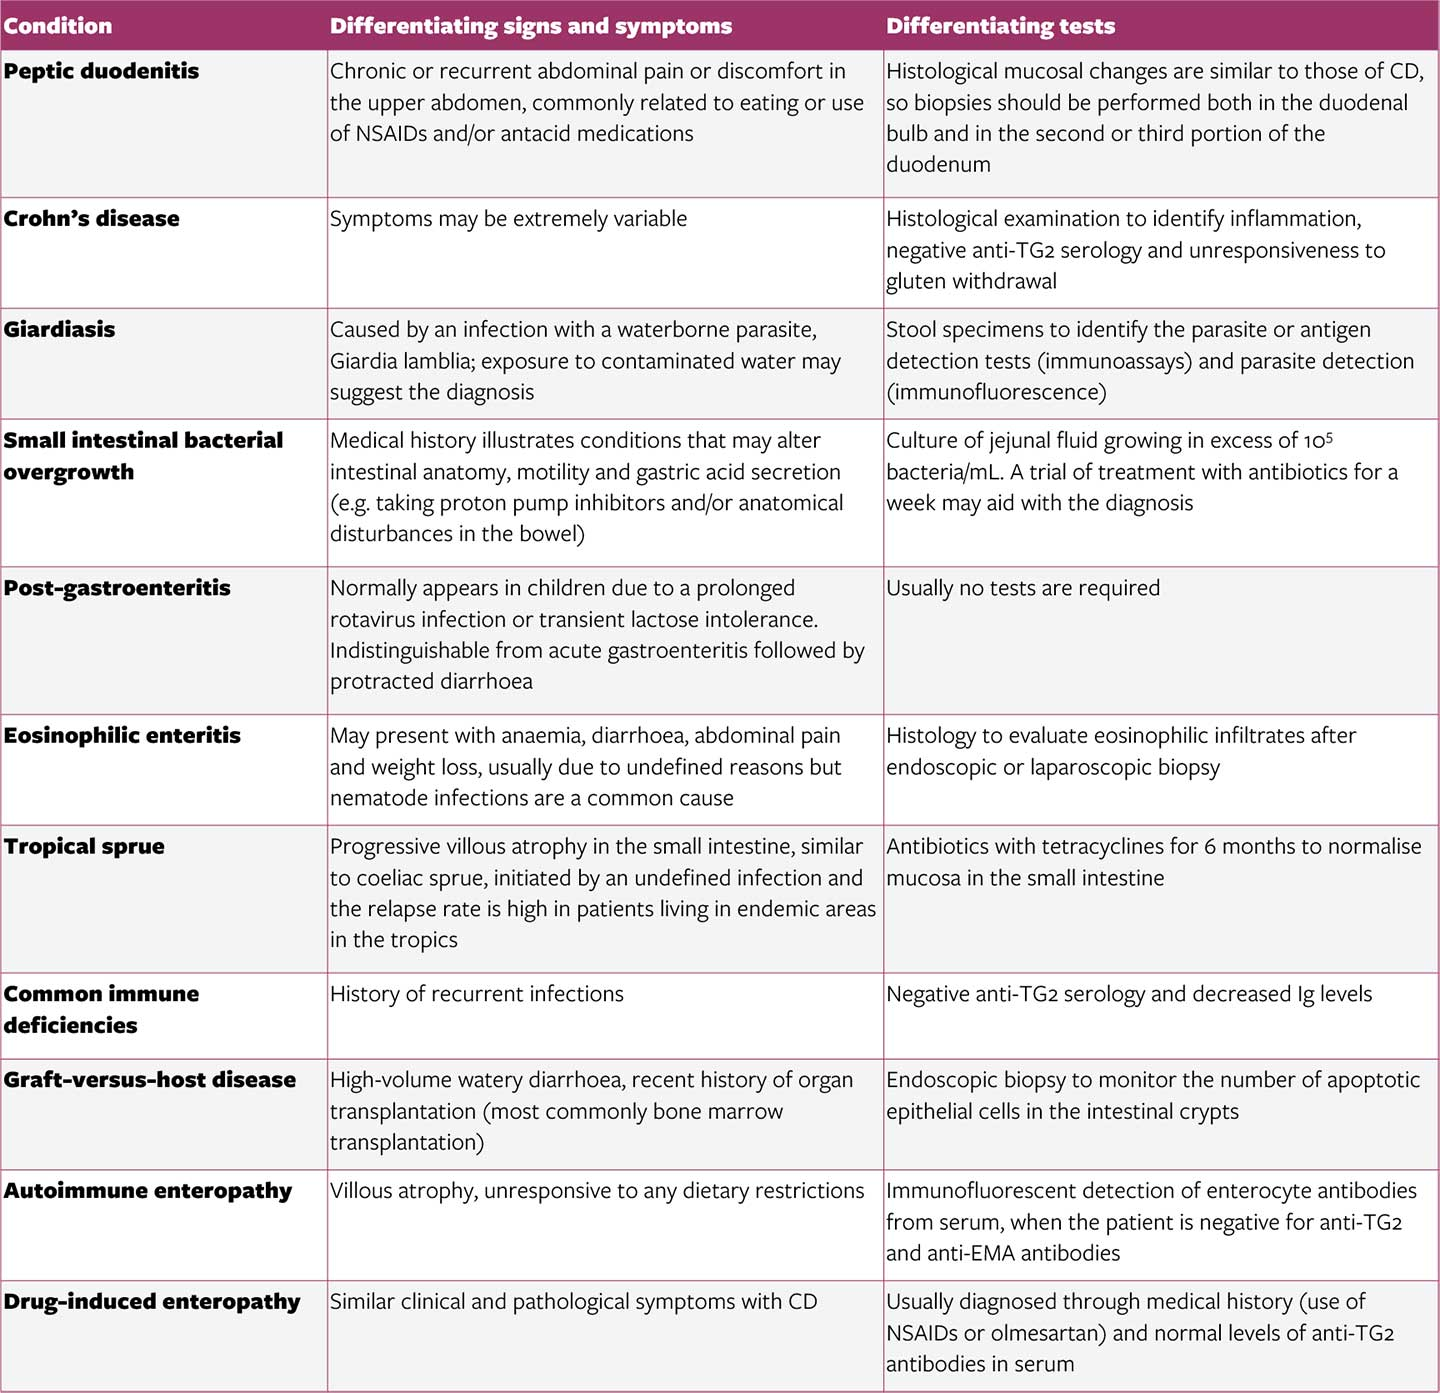 Differential diagnosis - table